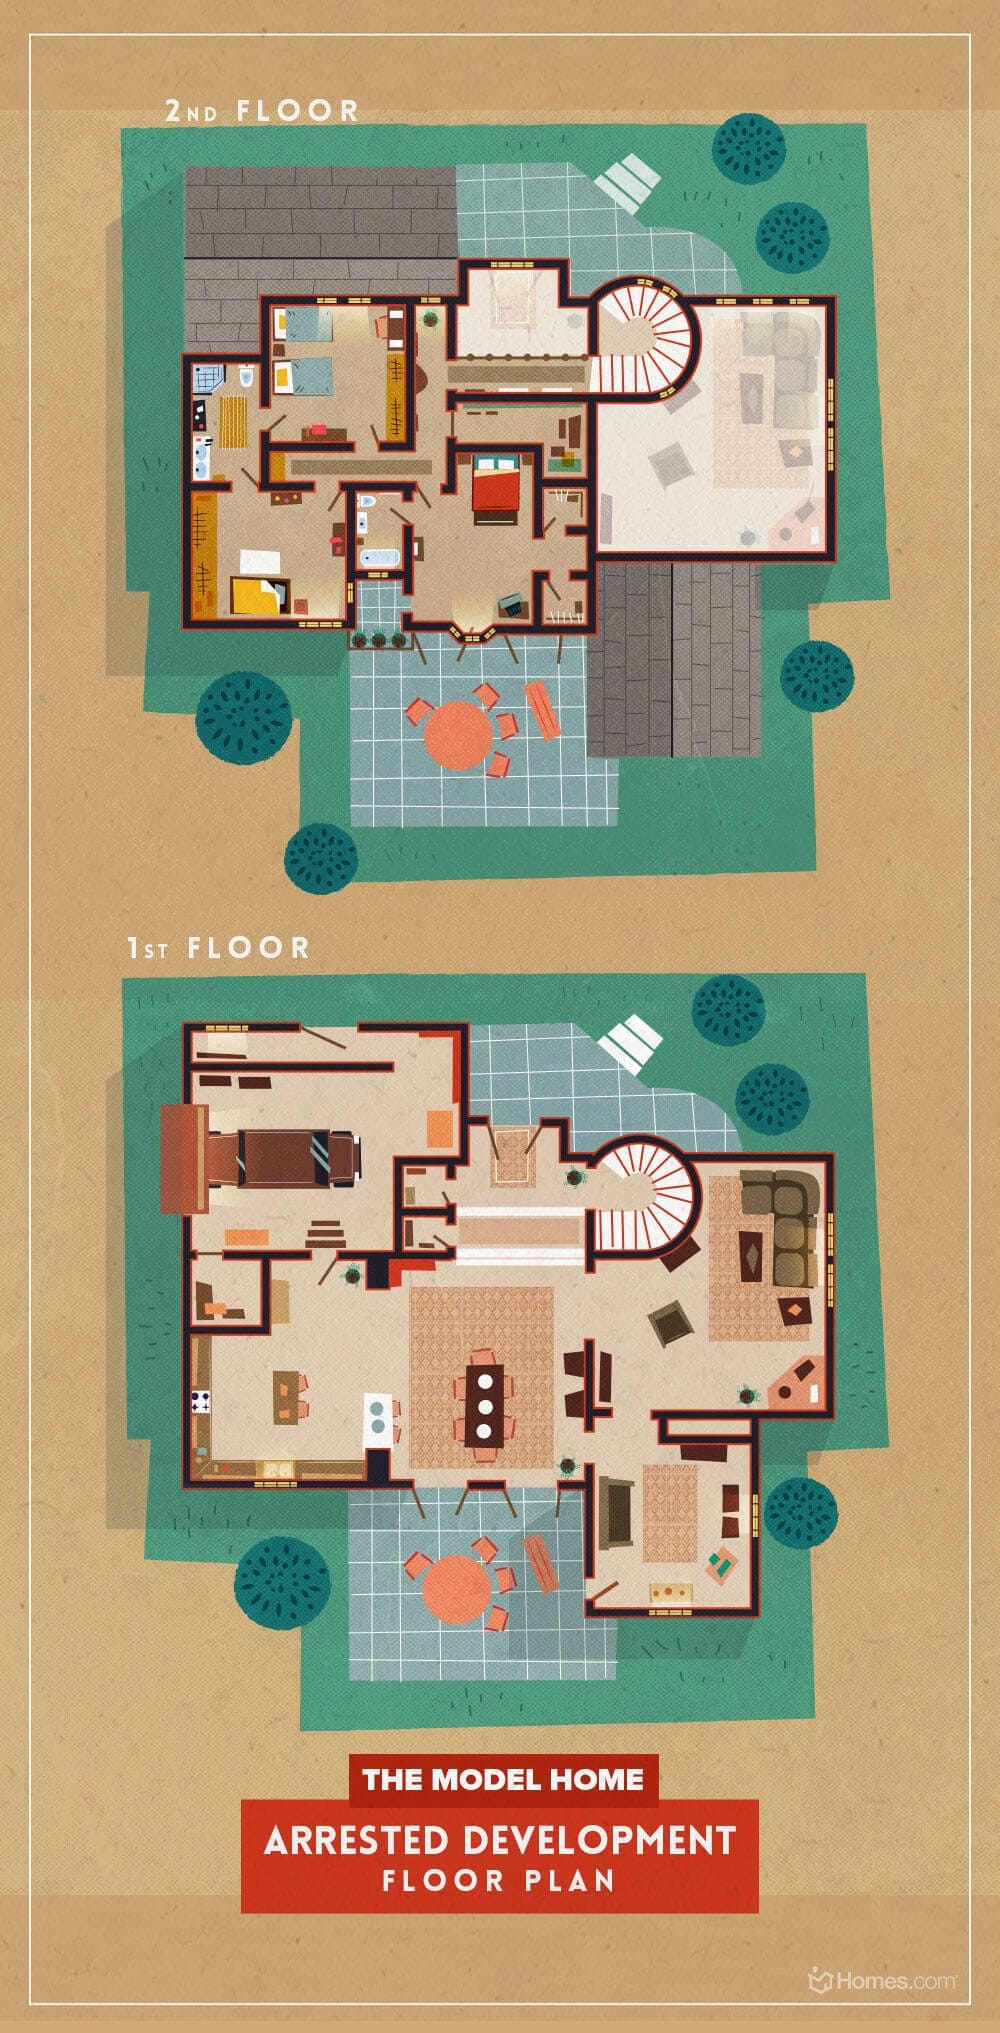 home-floor-plans-illustrations-1